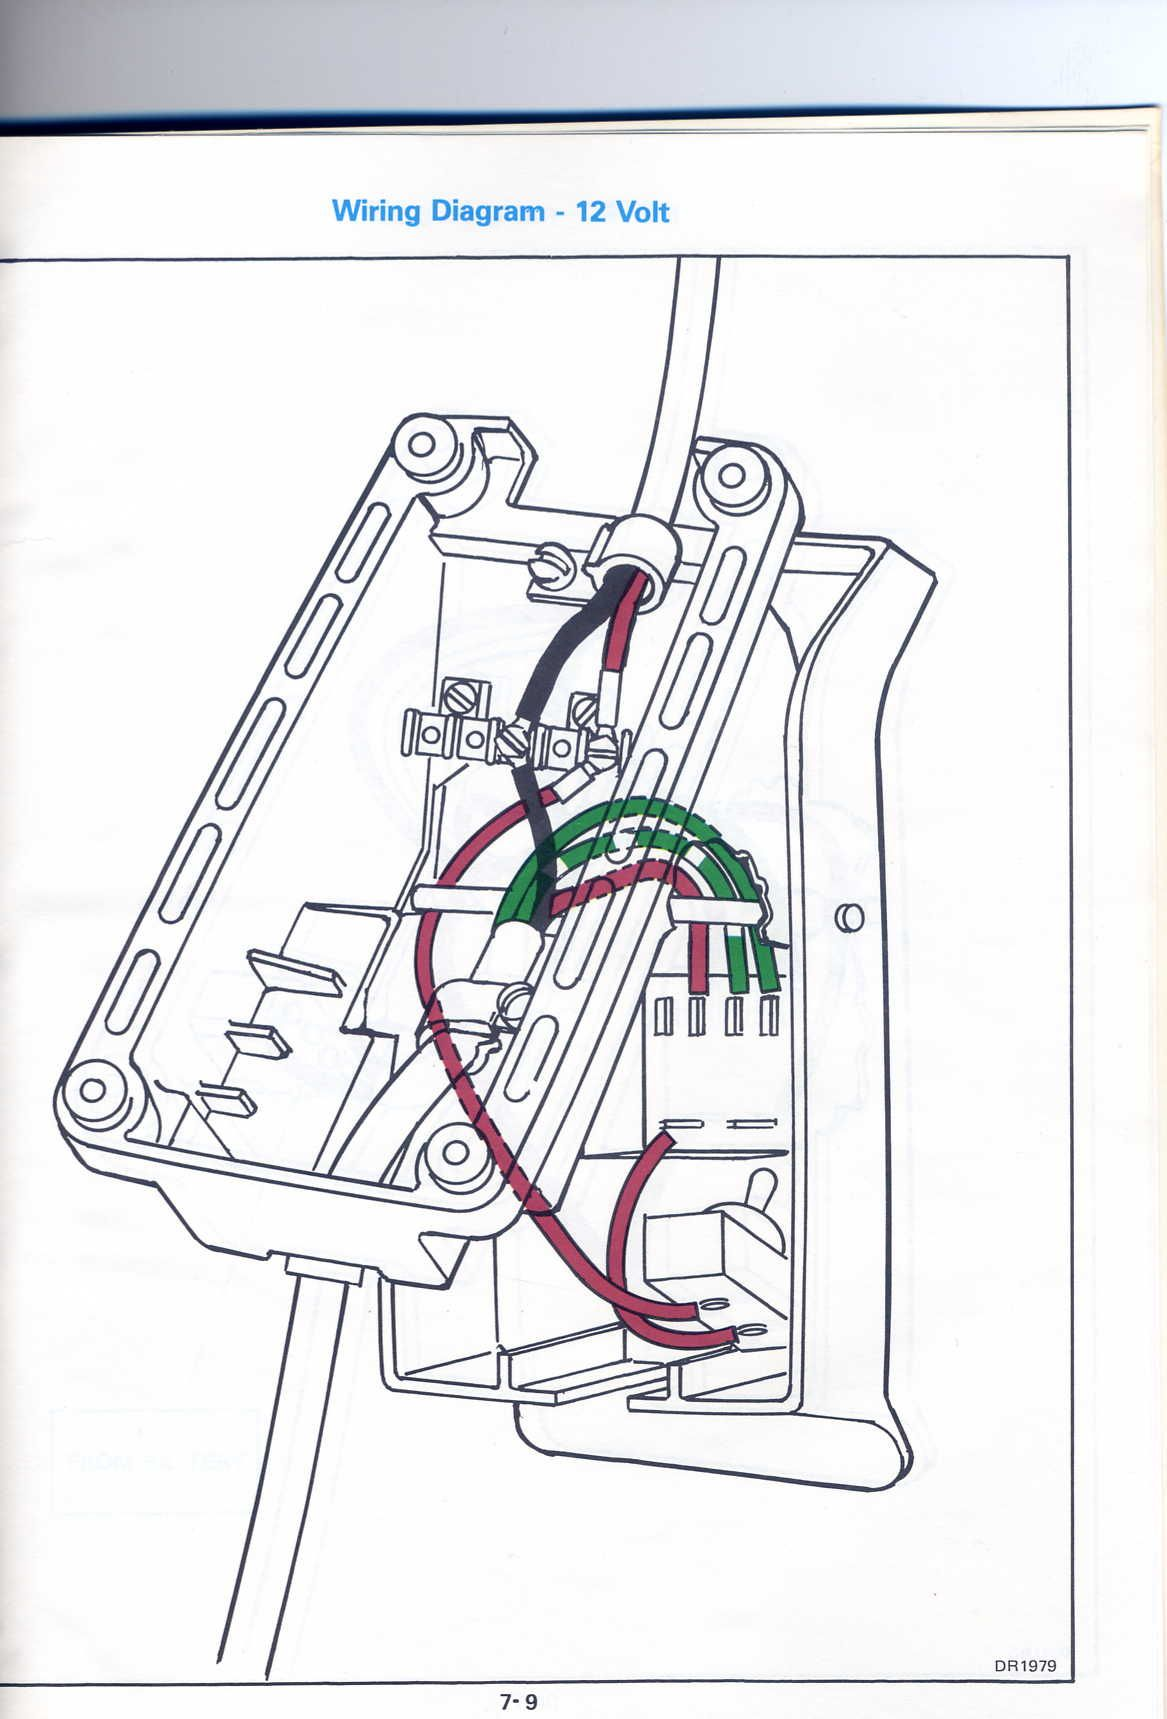 small resolution of motorguide trolling motor wiring diagram trying to repair a friends 1986 johnson trolling motor model does anyone have a wiring diagram design